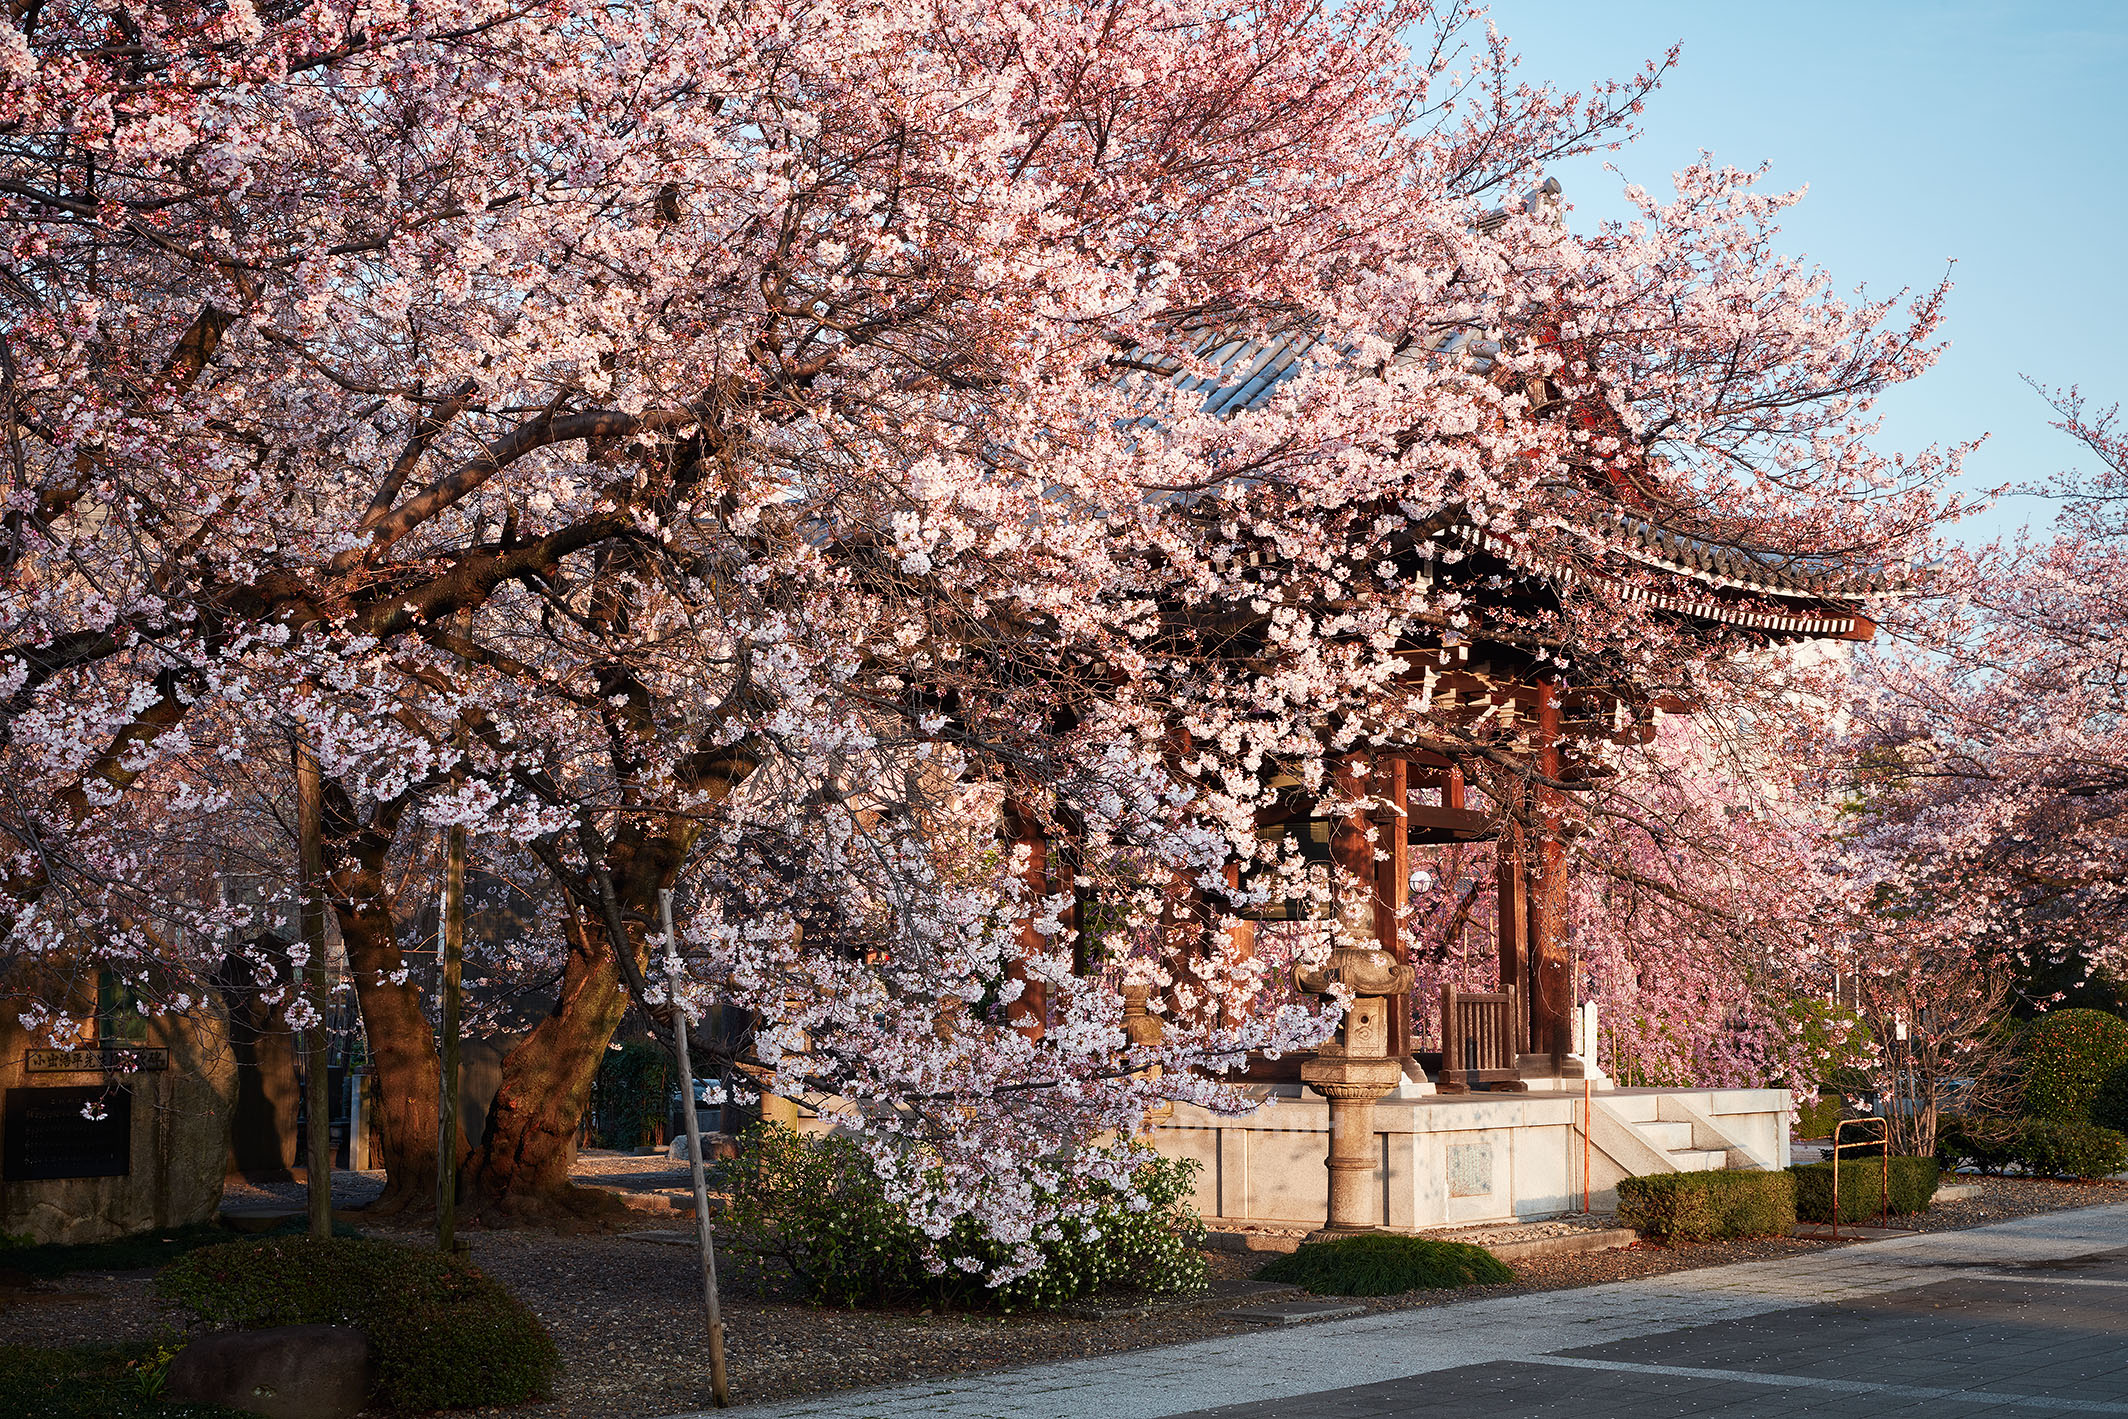 Sakura in full bloom in the morning